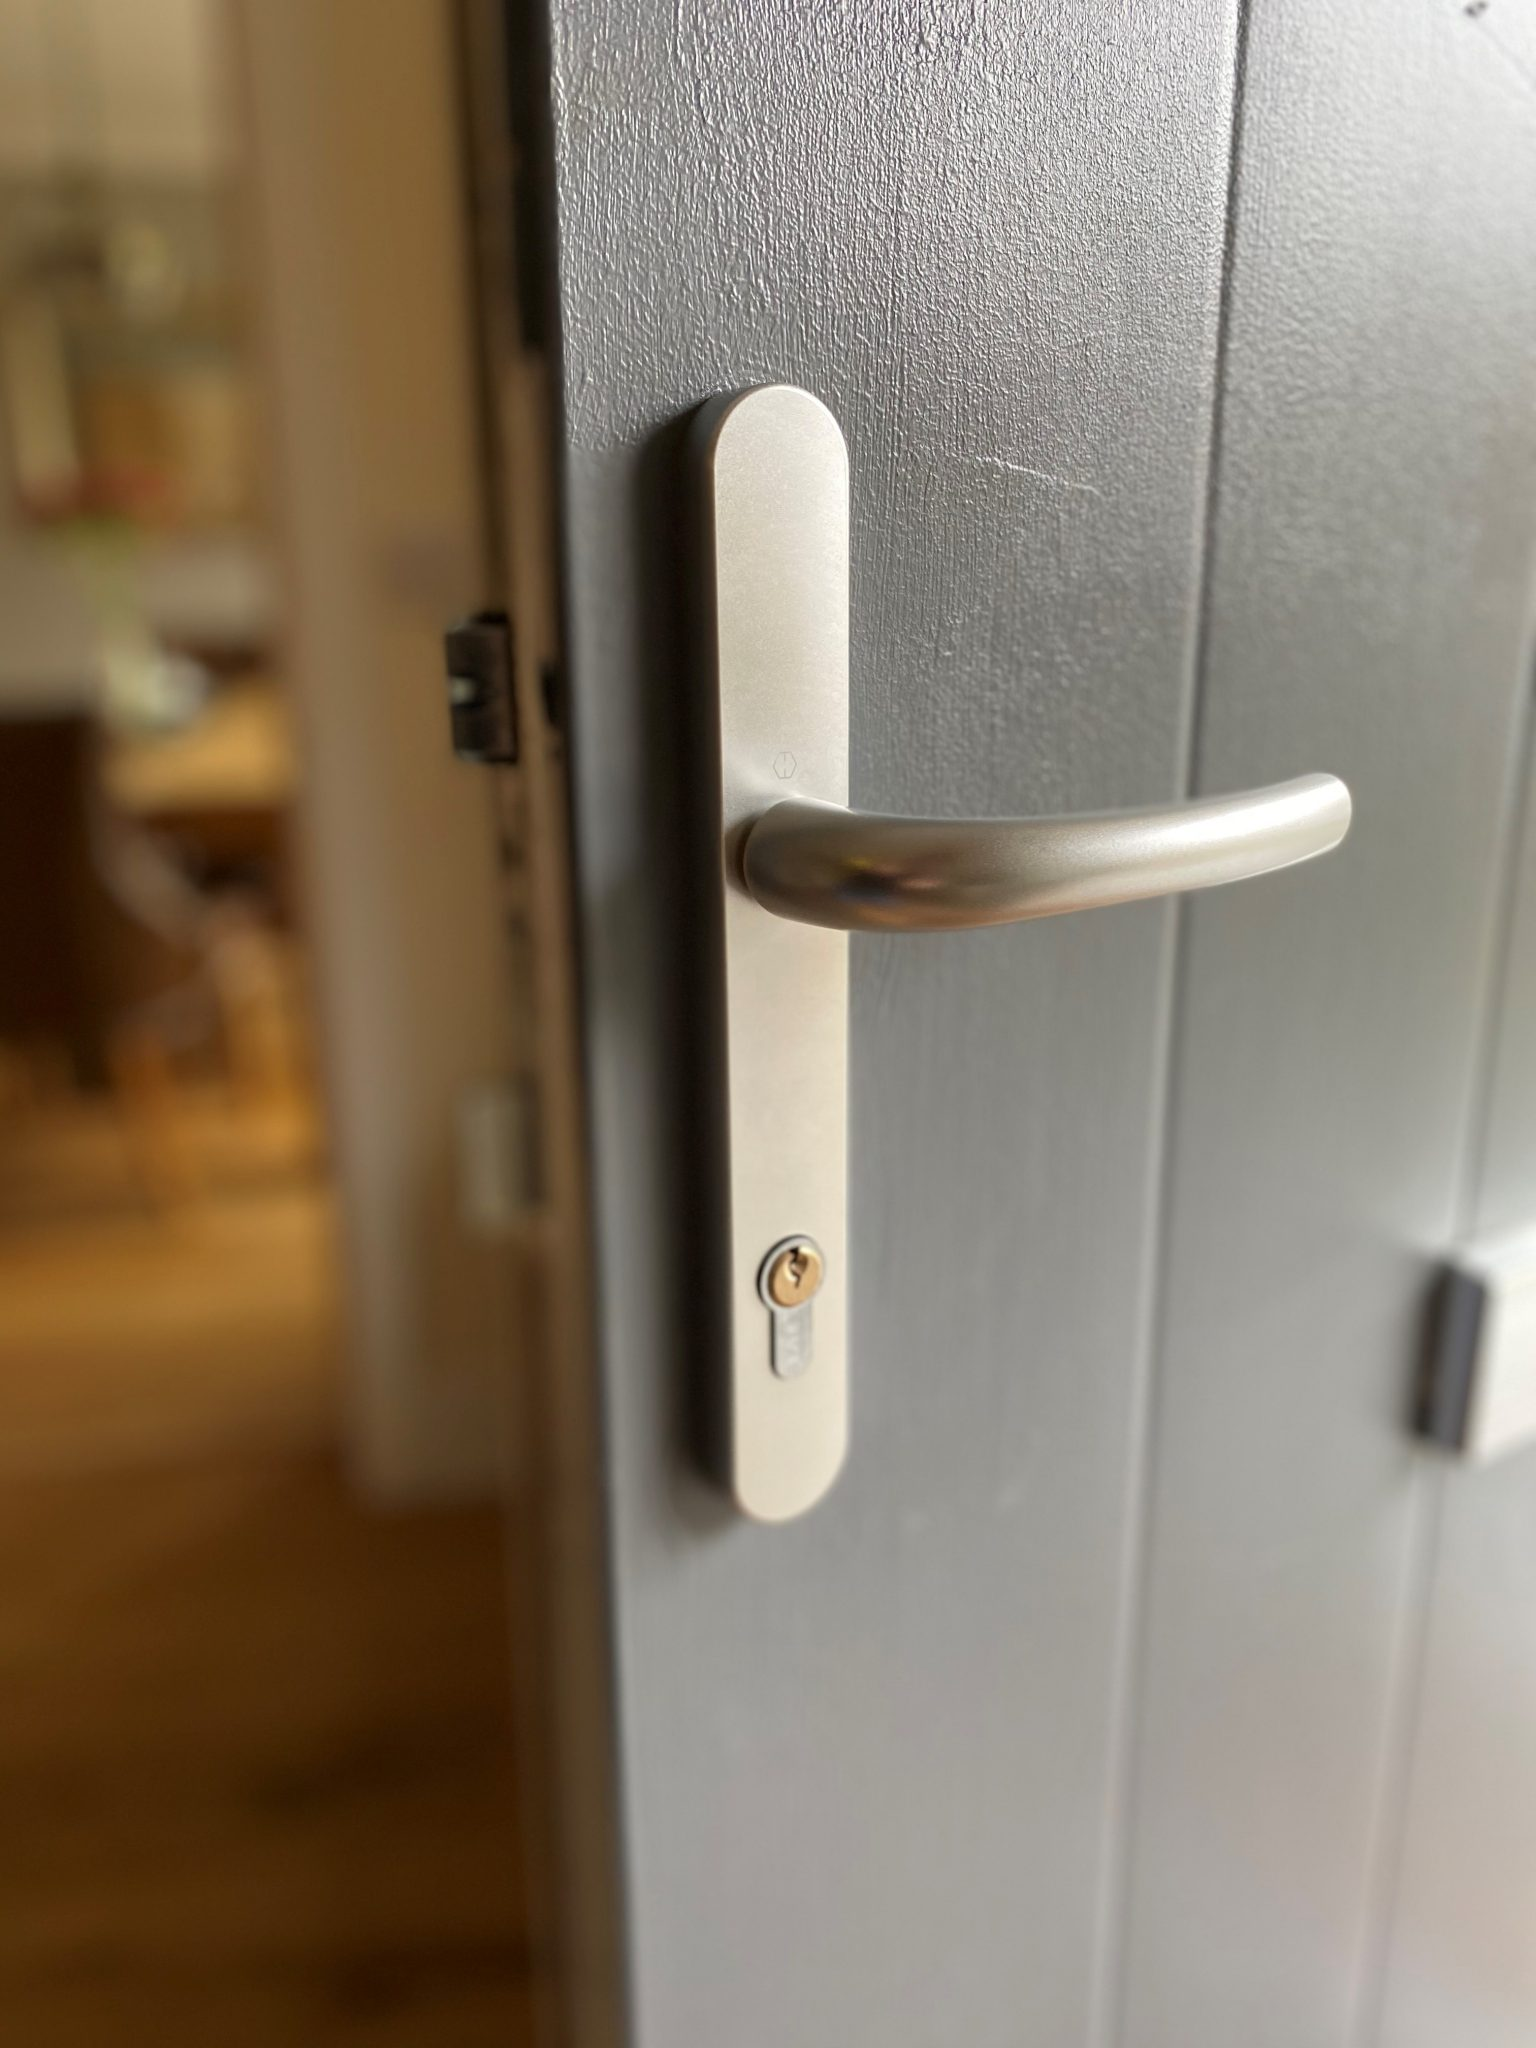 Replace the lock, not the door